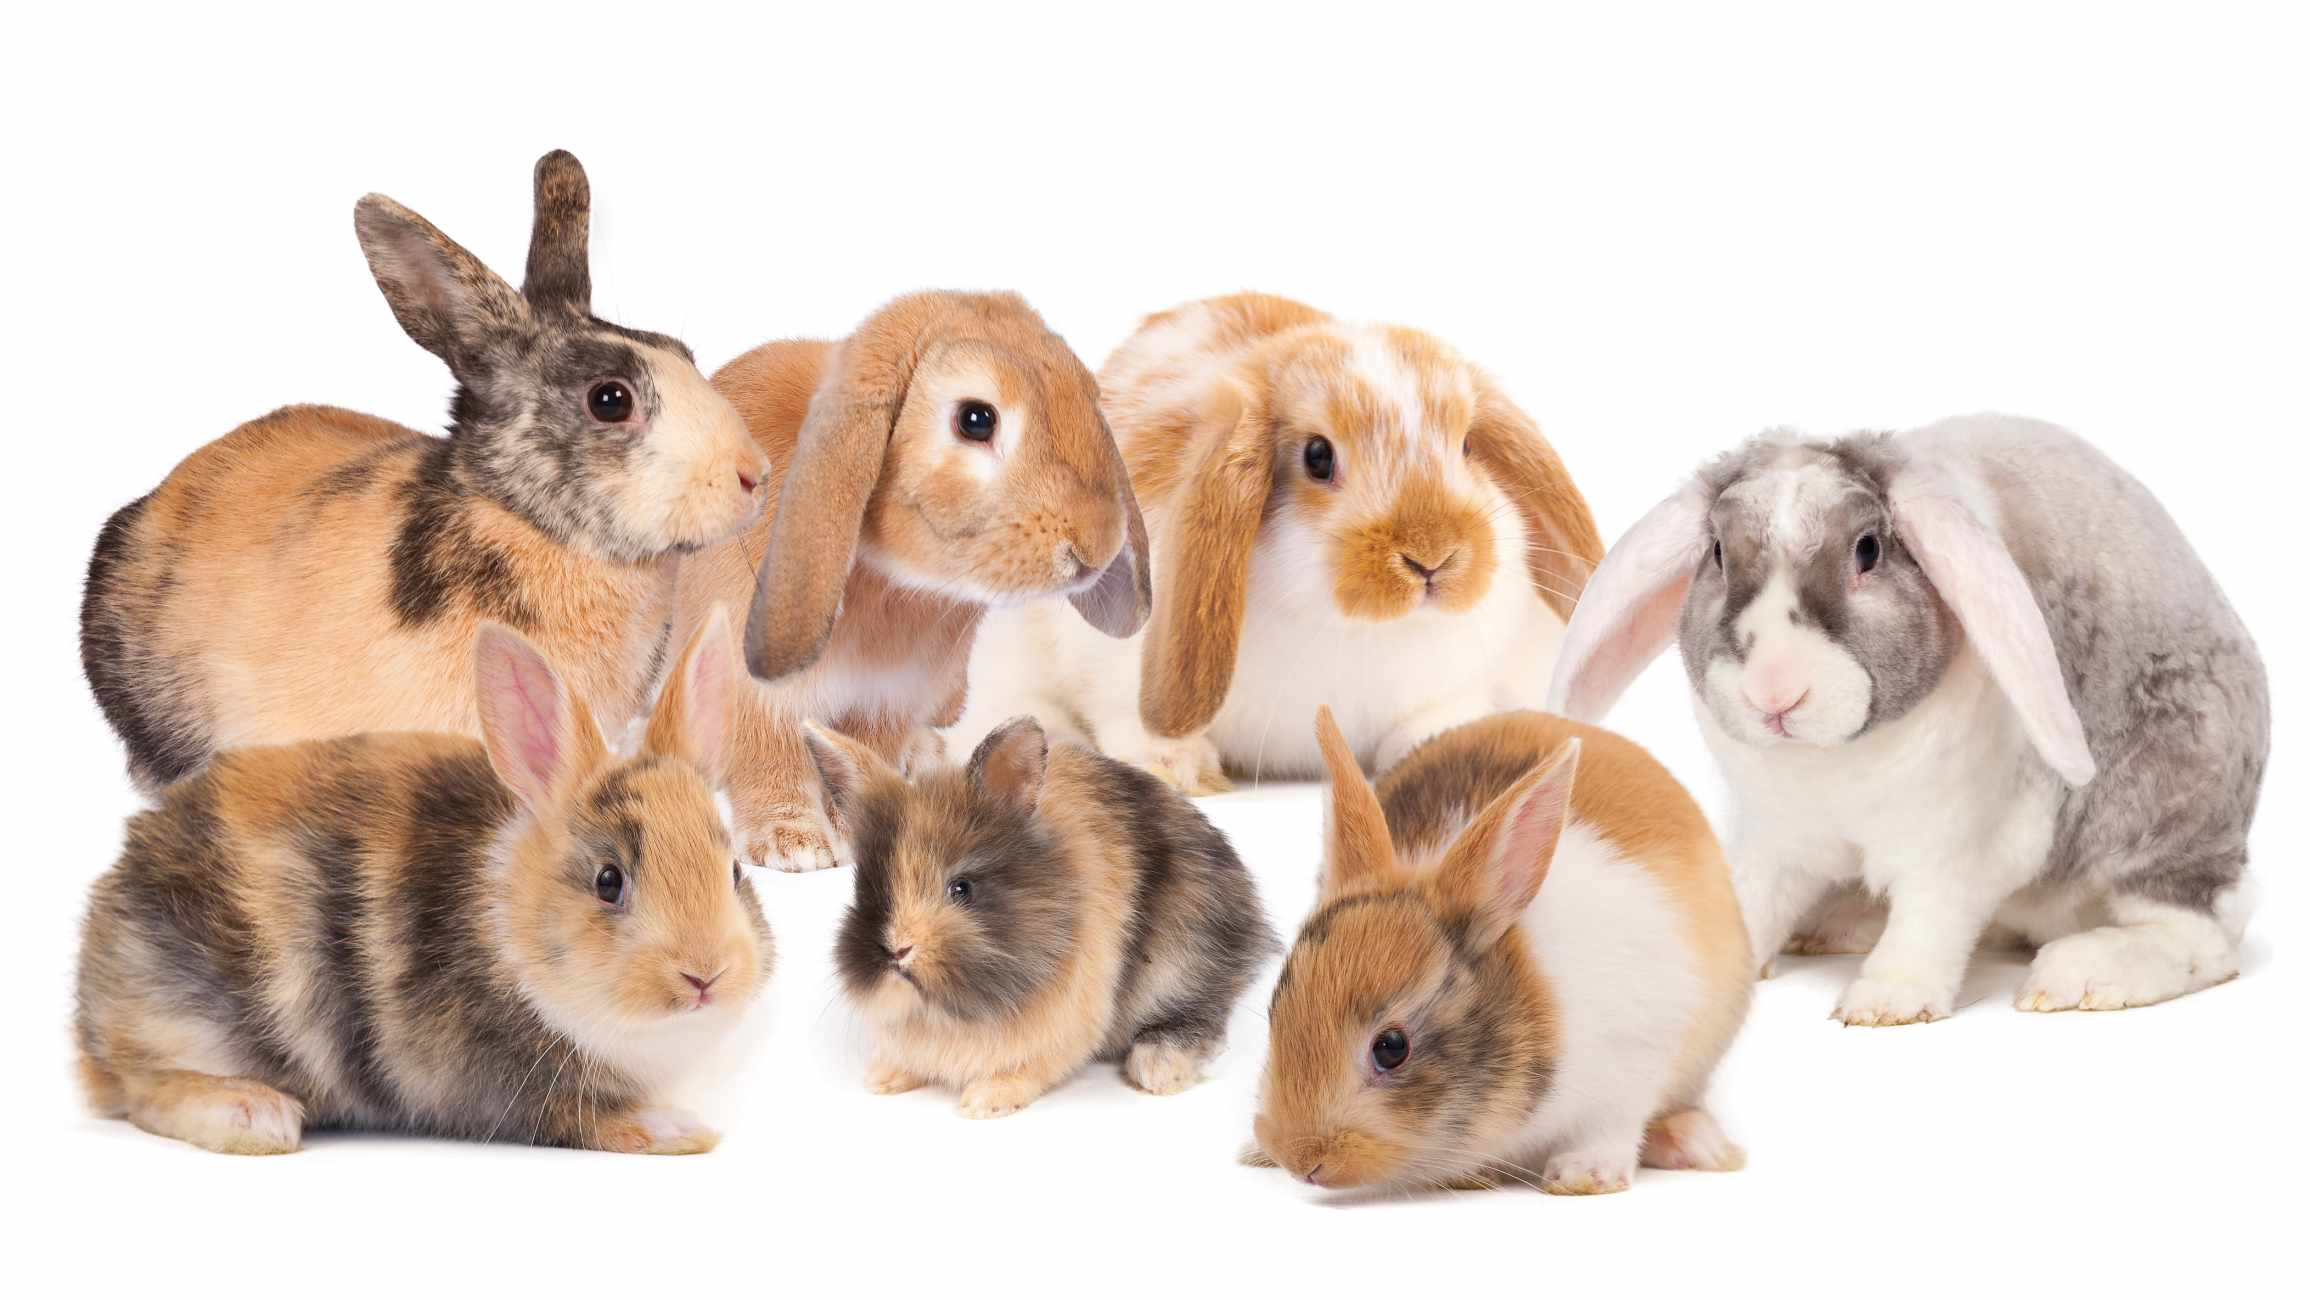 Rabbit fur color is an example of incomplete dominance